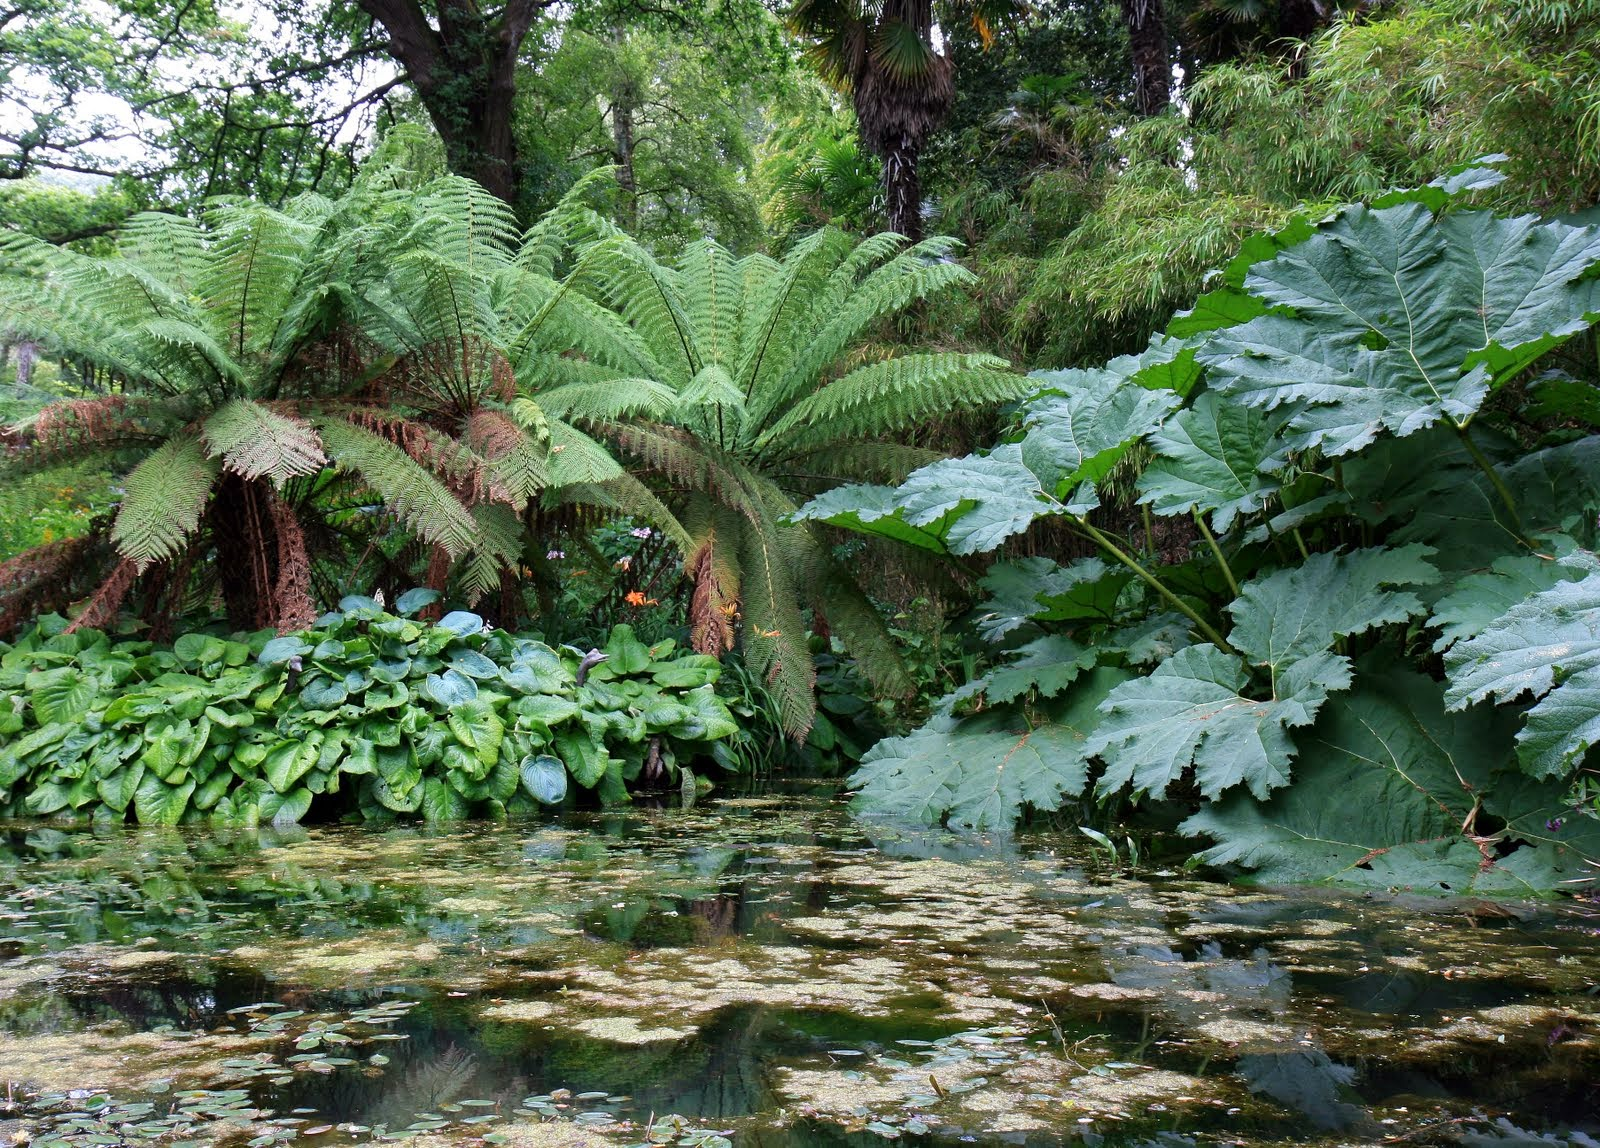 COLD HARDY PLANTS WITH GIANT LEAVES The Garden of Eaden